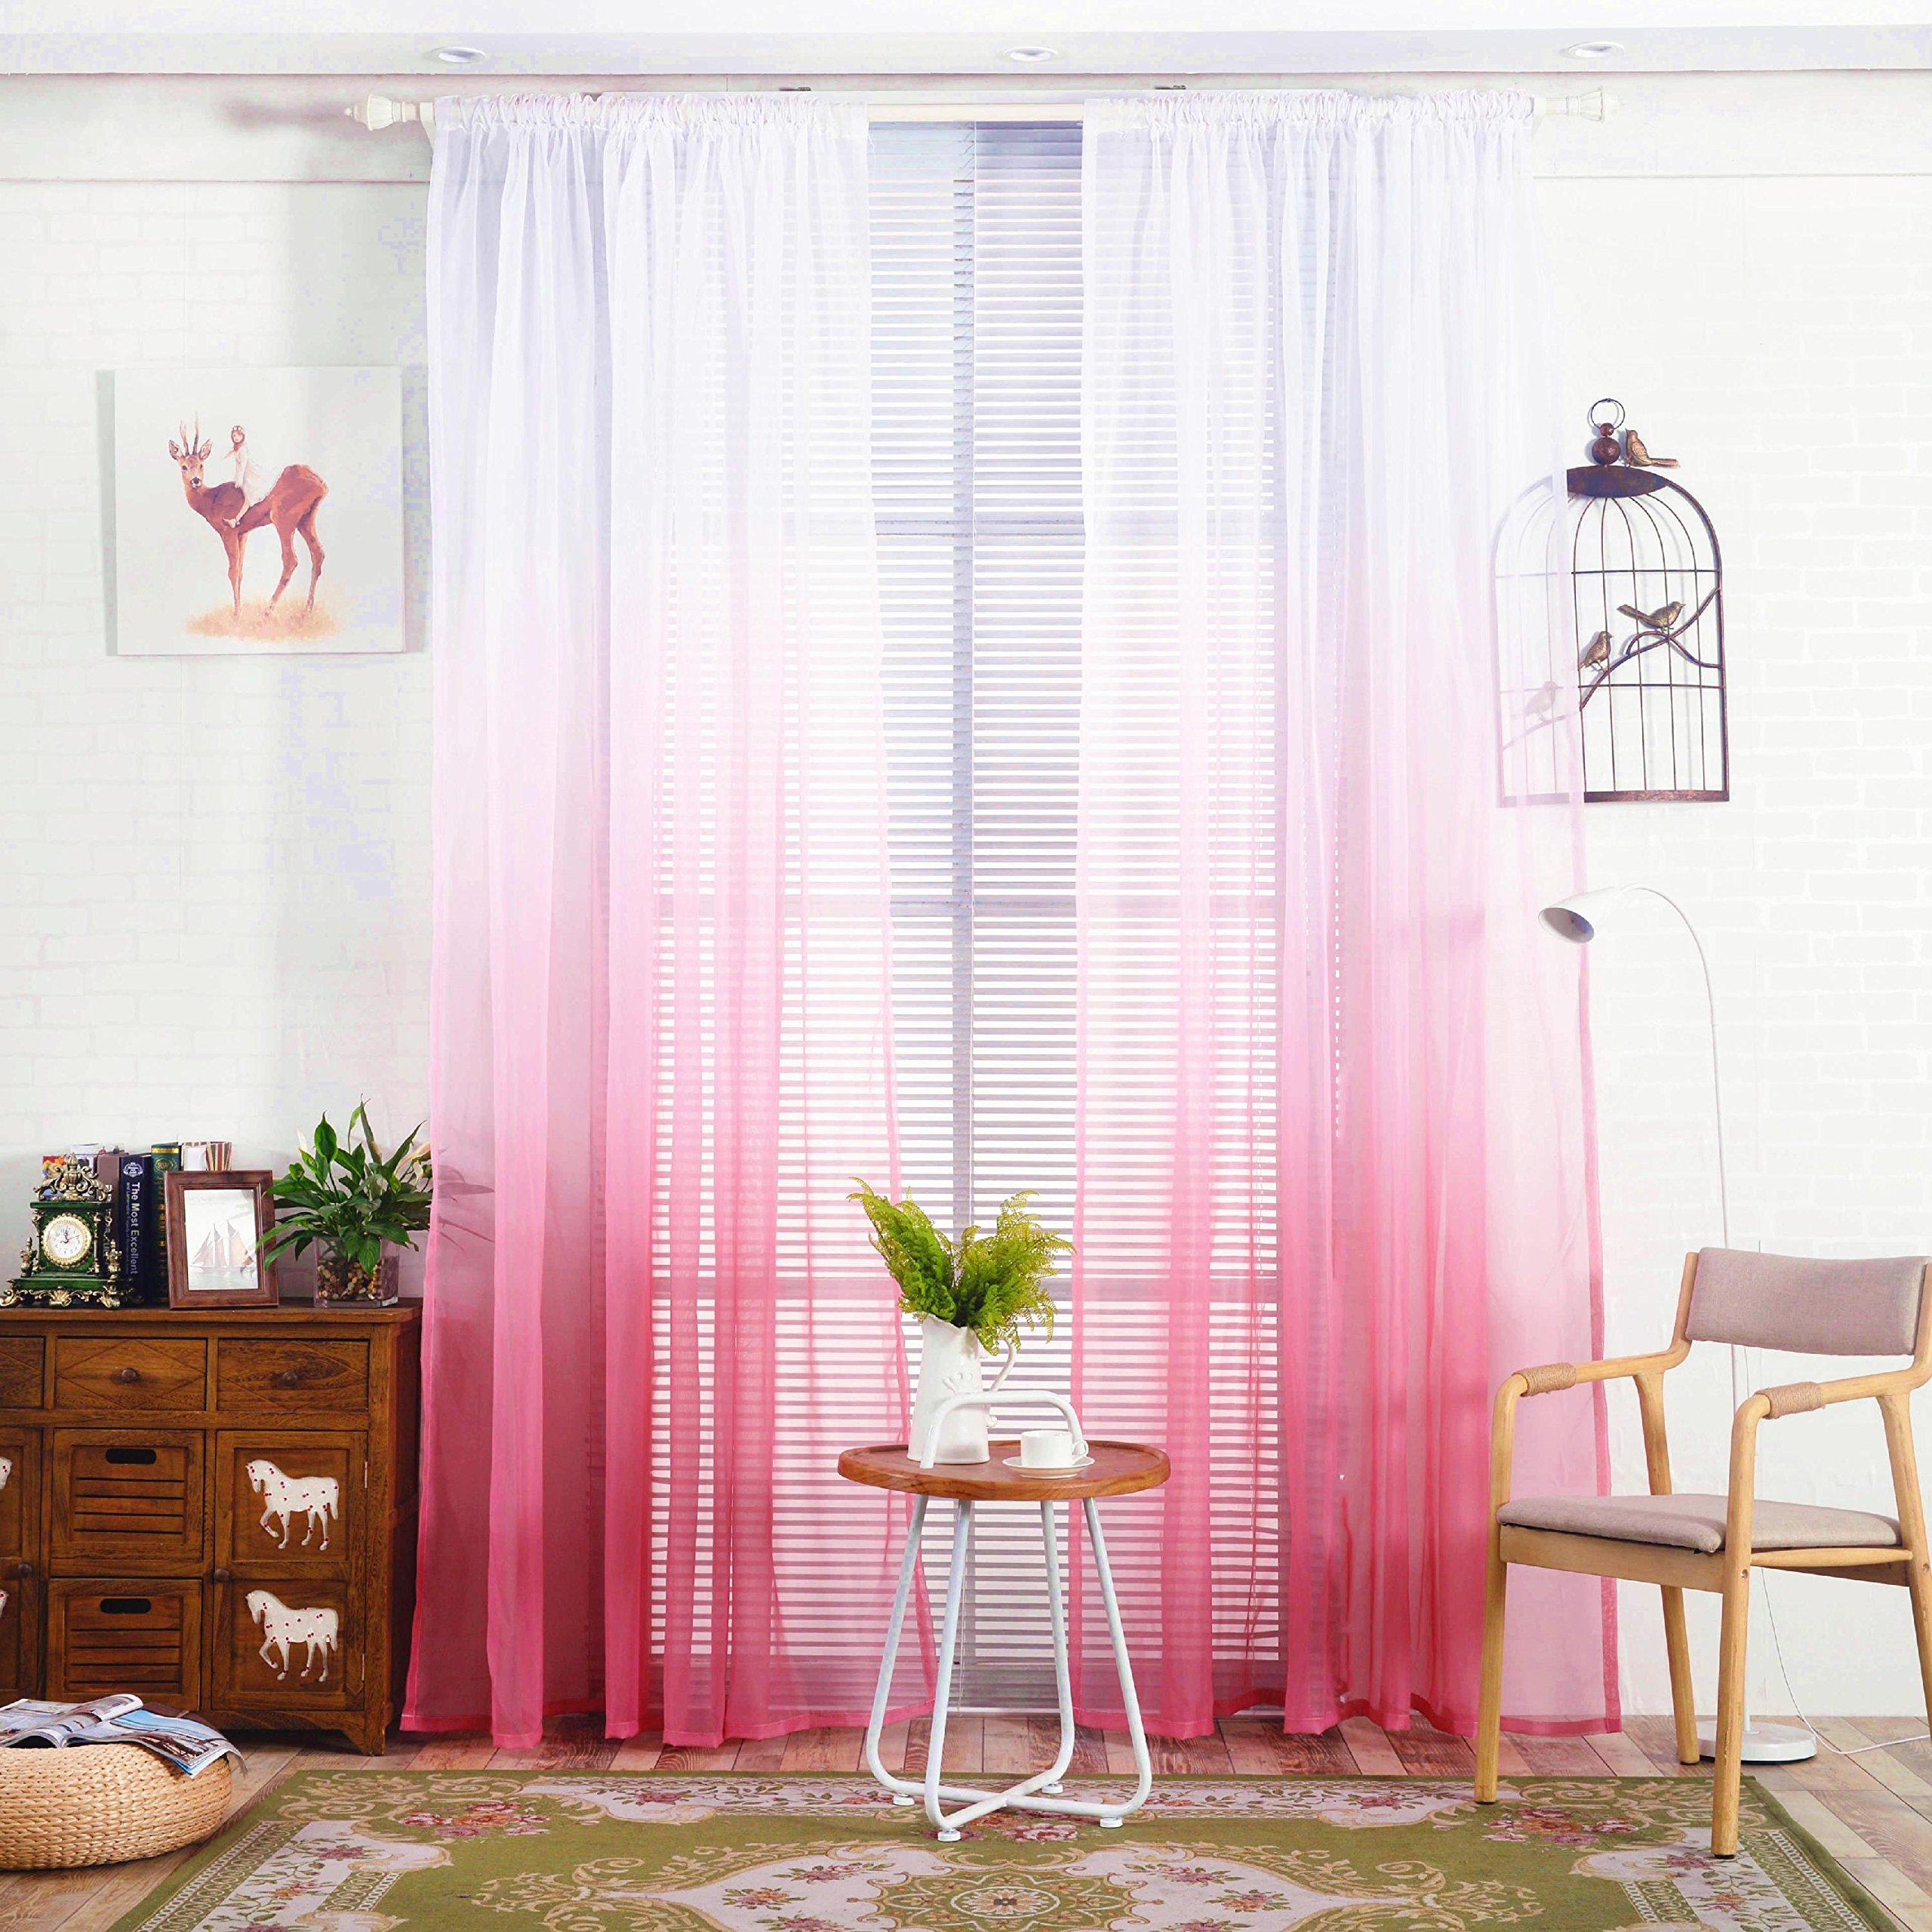 WPKIRA Home Fashion Romatic Rod Pocket Top Dreamlike Gradient Color Window Treatments Panels Voile Perspective Sheer Window Curtains Drapes For Living Room 1 Panel W39 x L63 inch